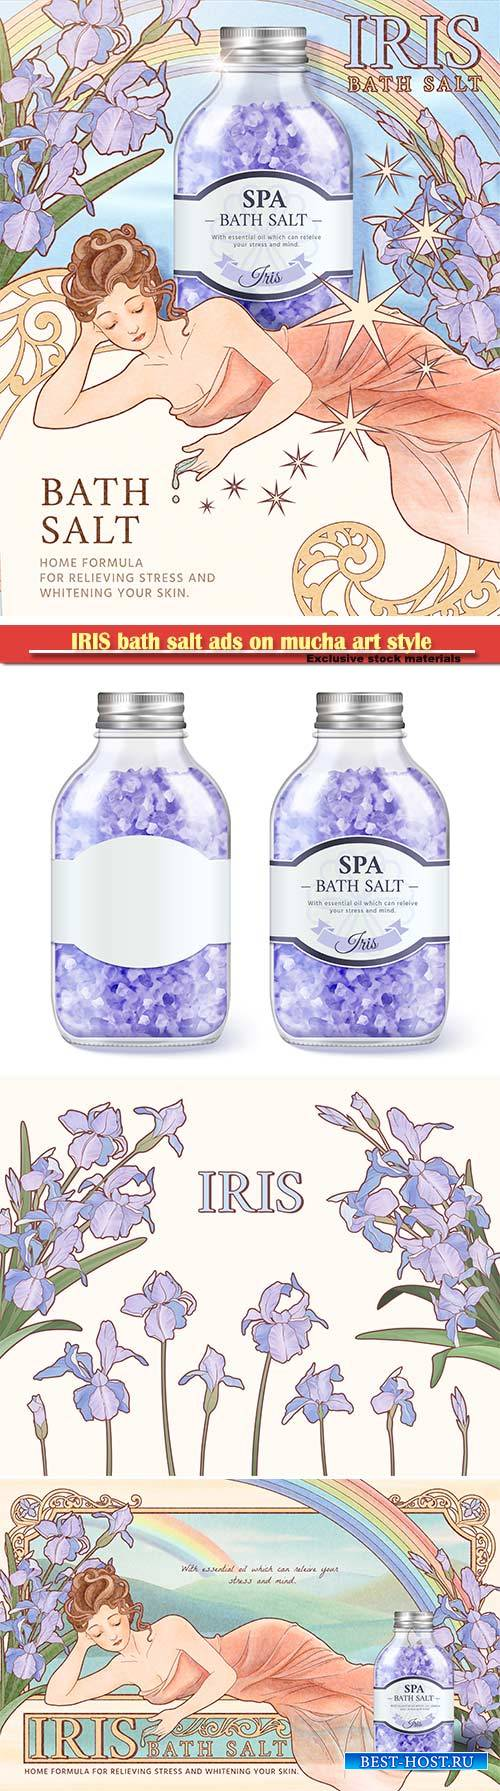 IRIS bath salt ads on mucha art style background, woman side lying with pur ...